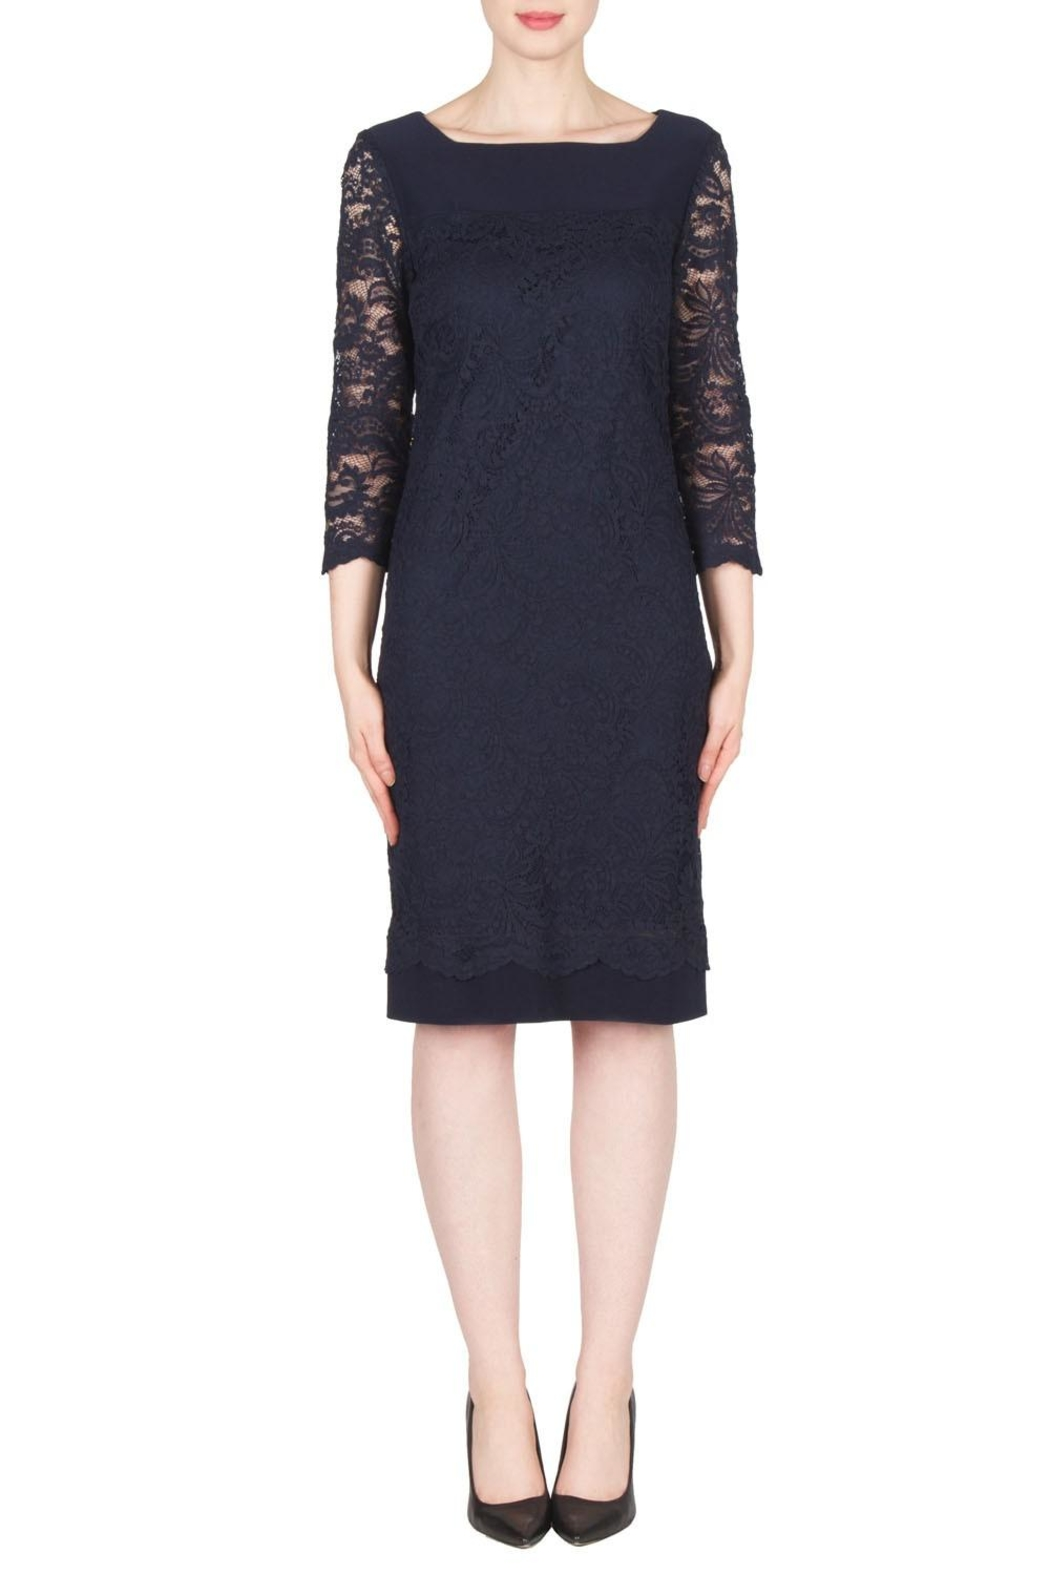 Joseph Ribkoff Navy Lace Dress from Canada by Chez Therese Clothing ...